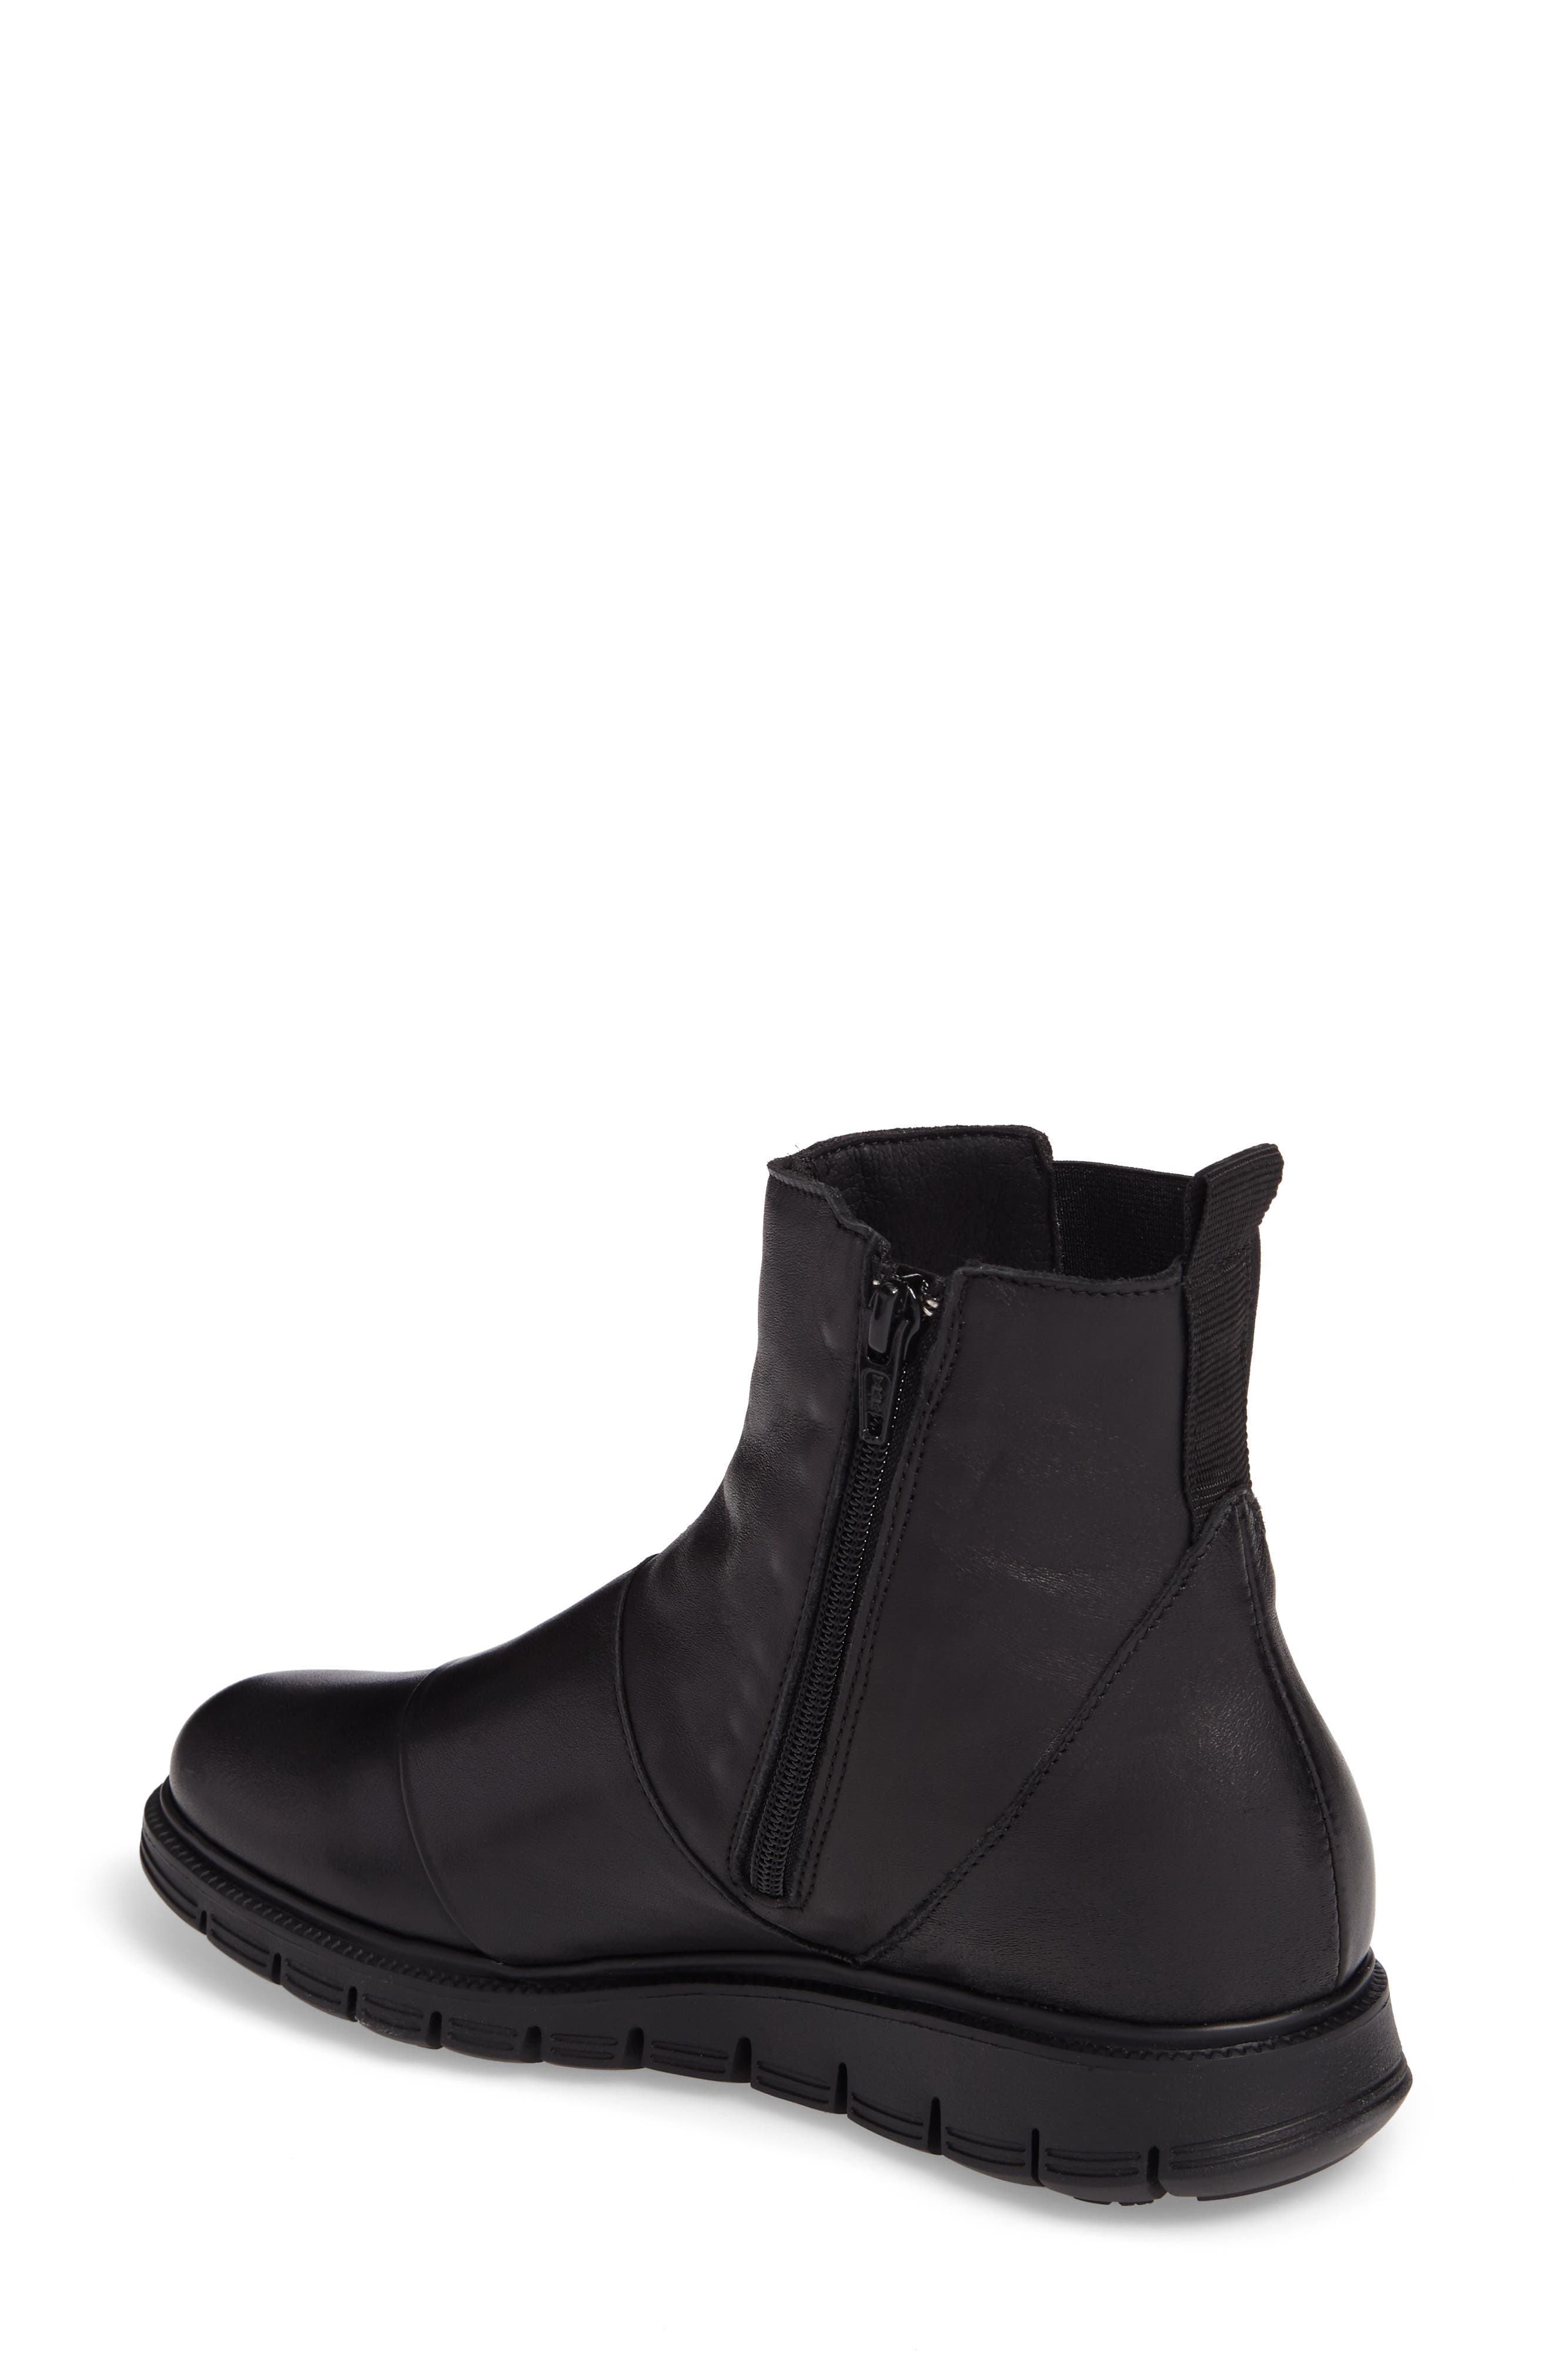 Gish Water-Resistant Bootie,                             Alternate thumbnail 2, color,                             BLACK LEATHER